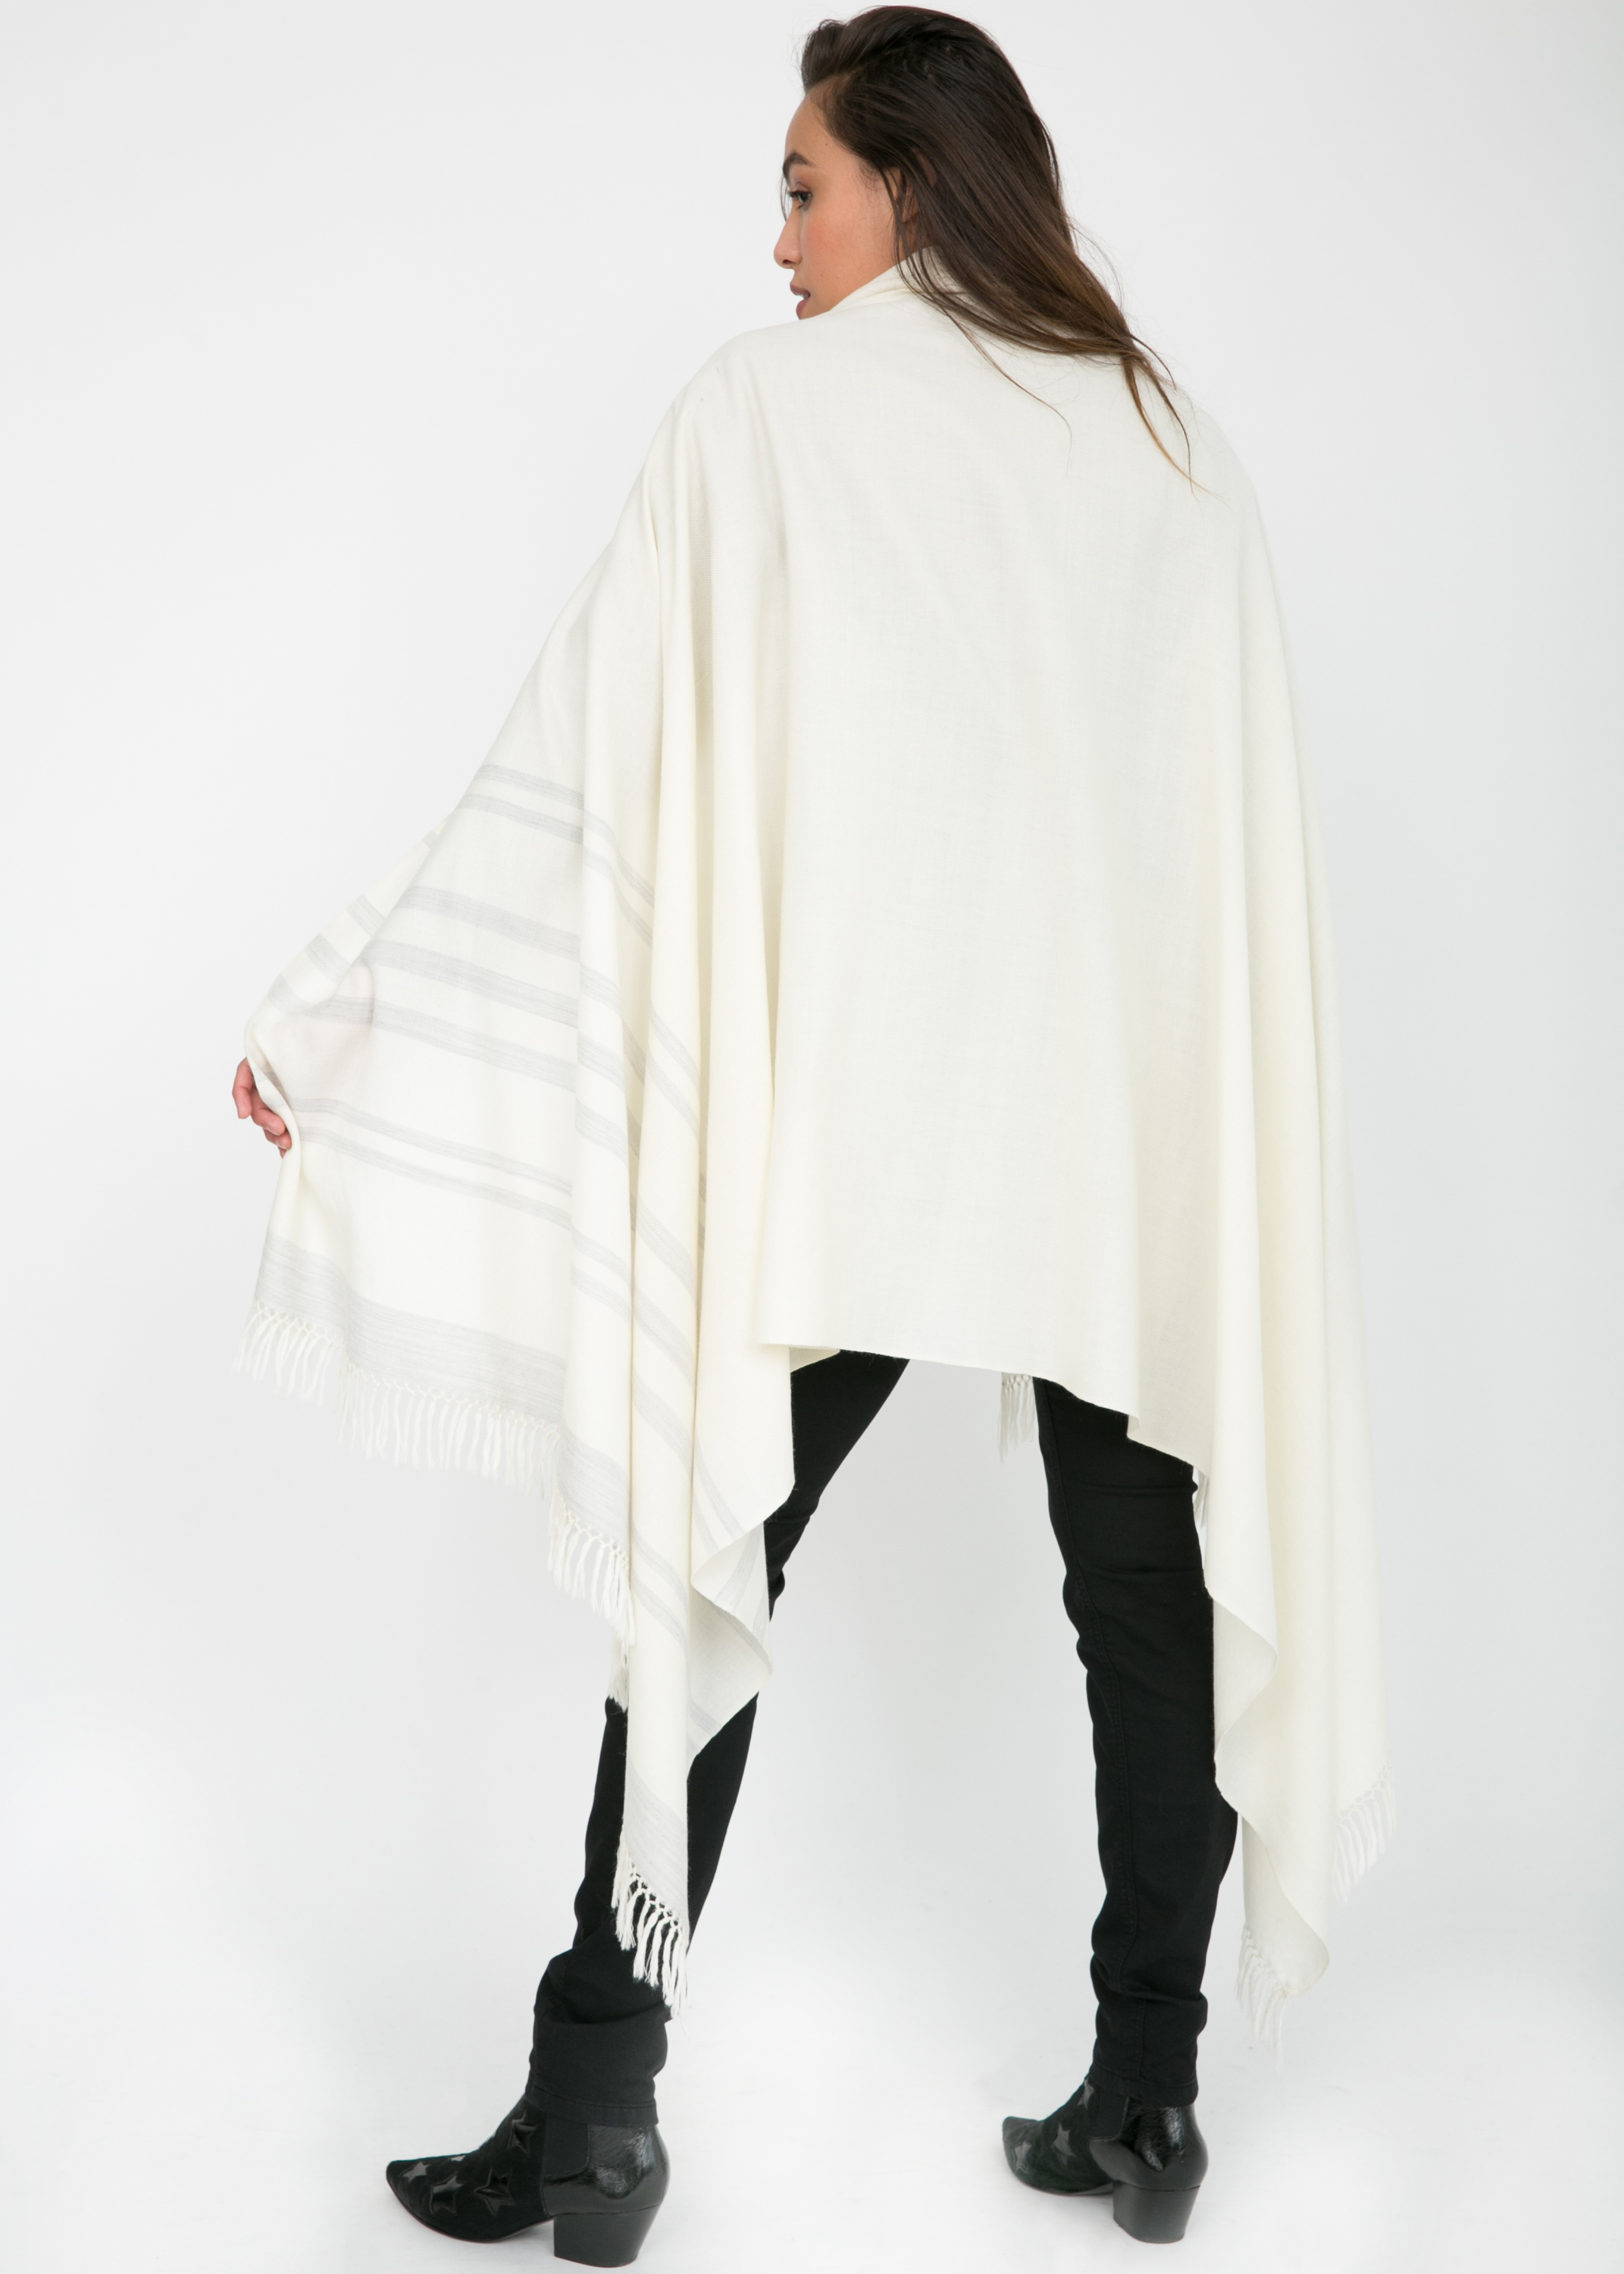 Handwoven Oversize Scarf in Camel Twill Mix Weave 100 X 200cm